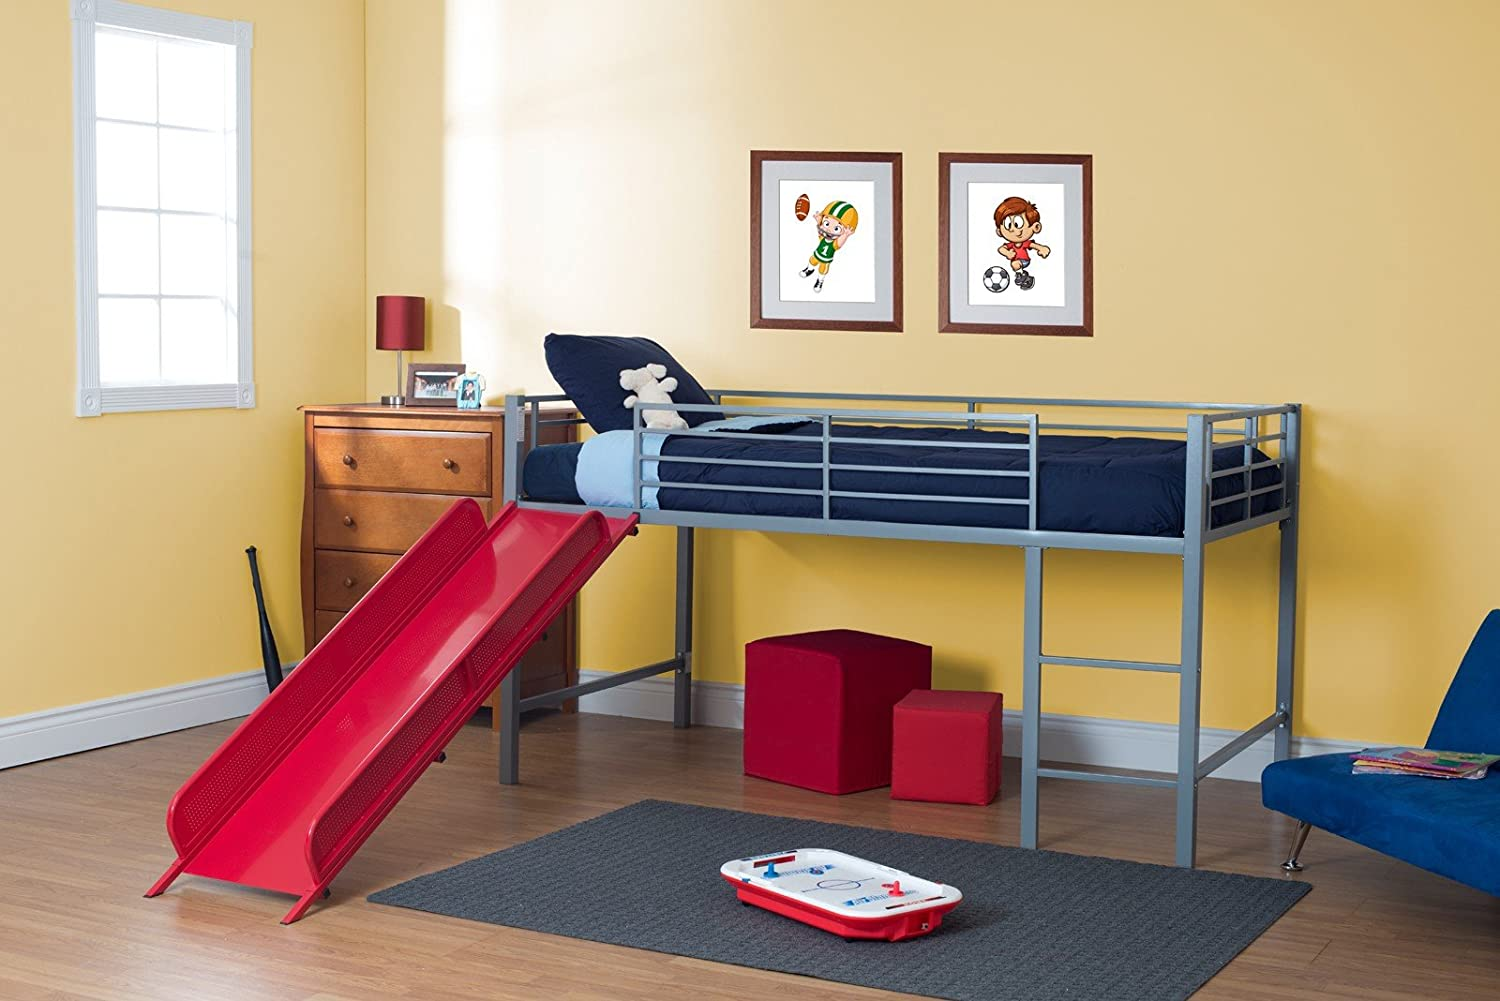 Toddler bunk beds and loft beds browse read reviews discover - Amazon Com Dhp Junior Fantasy Loft Bed Silver With Red Slide Kitchen Dining